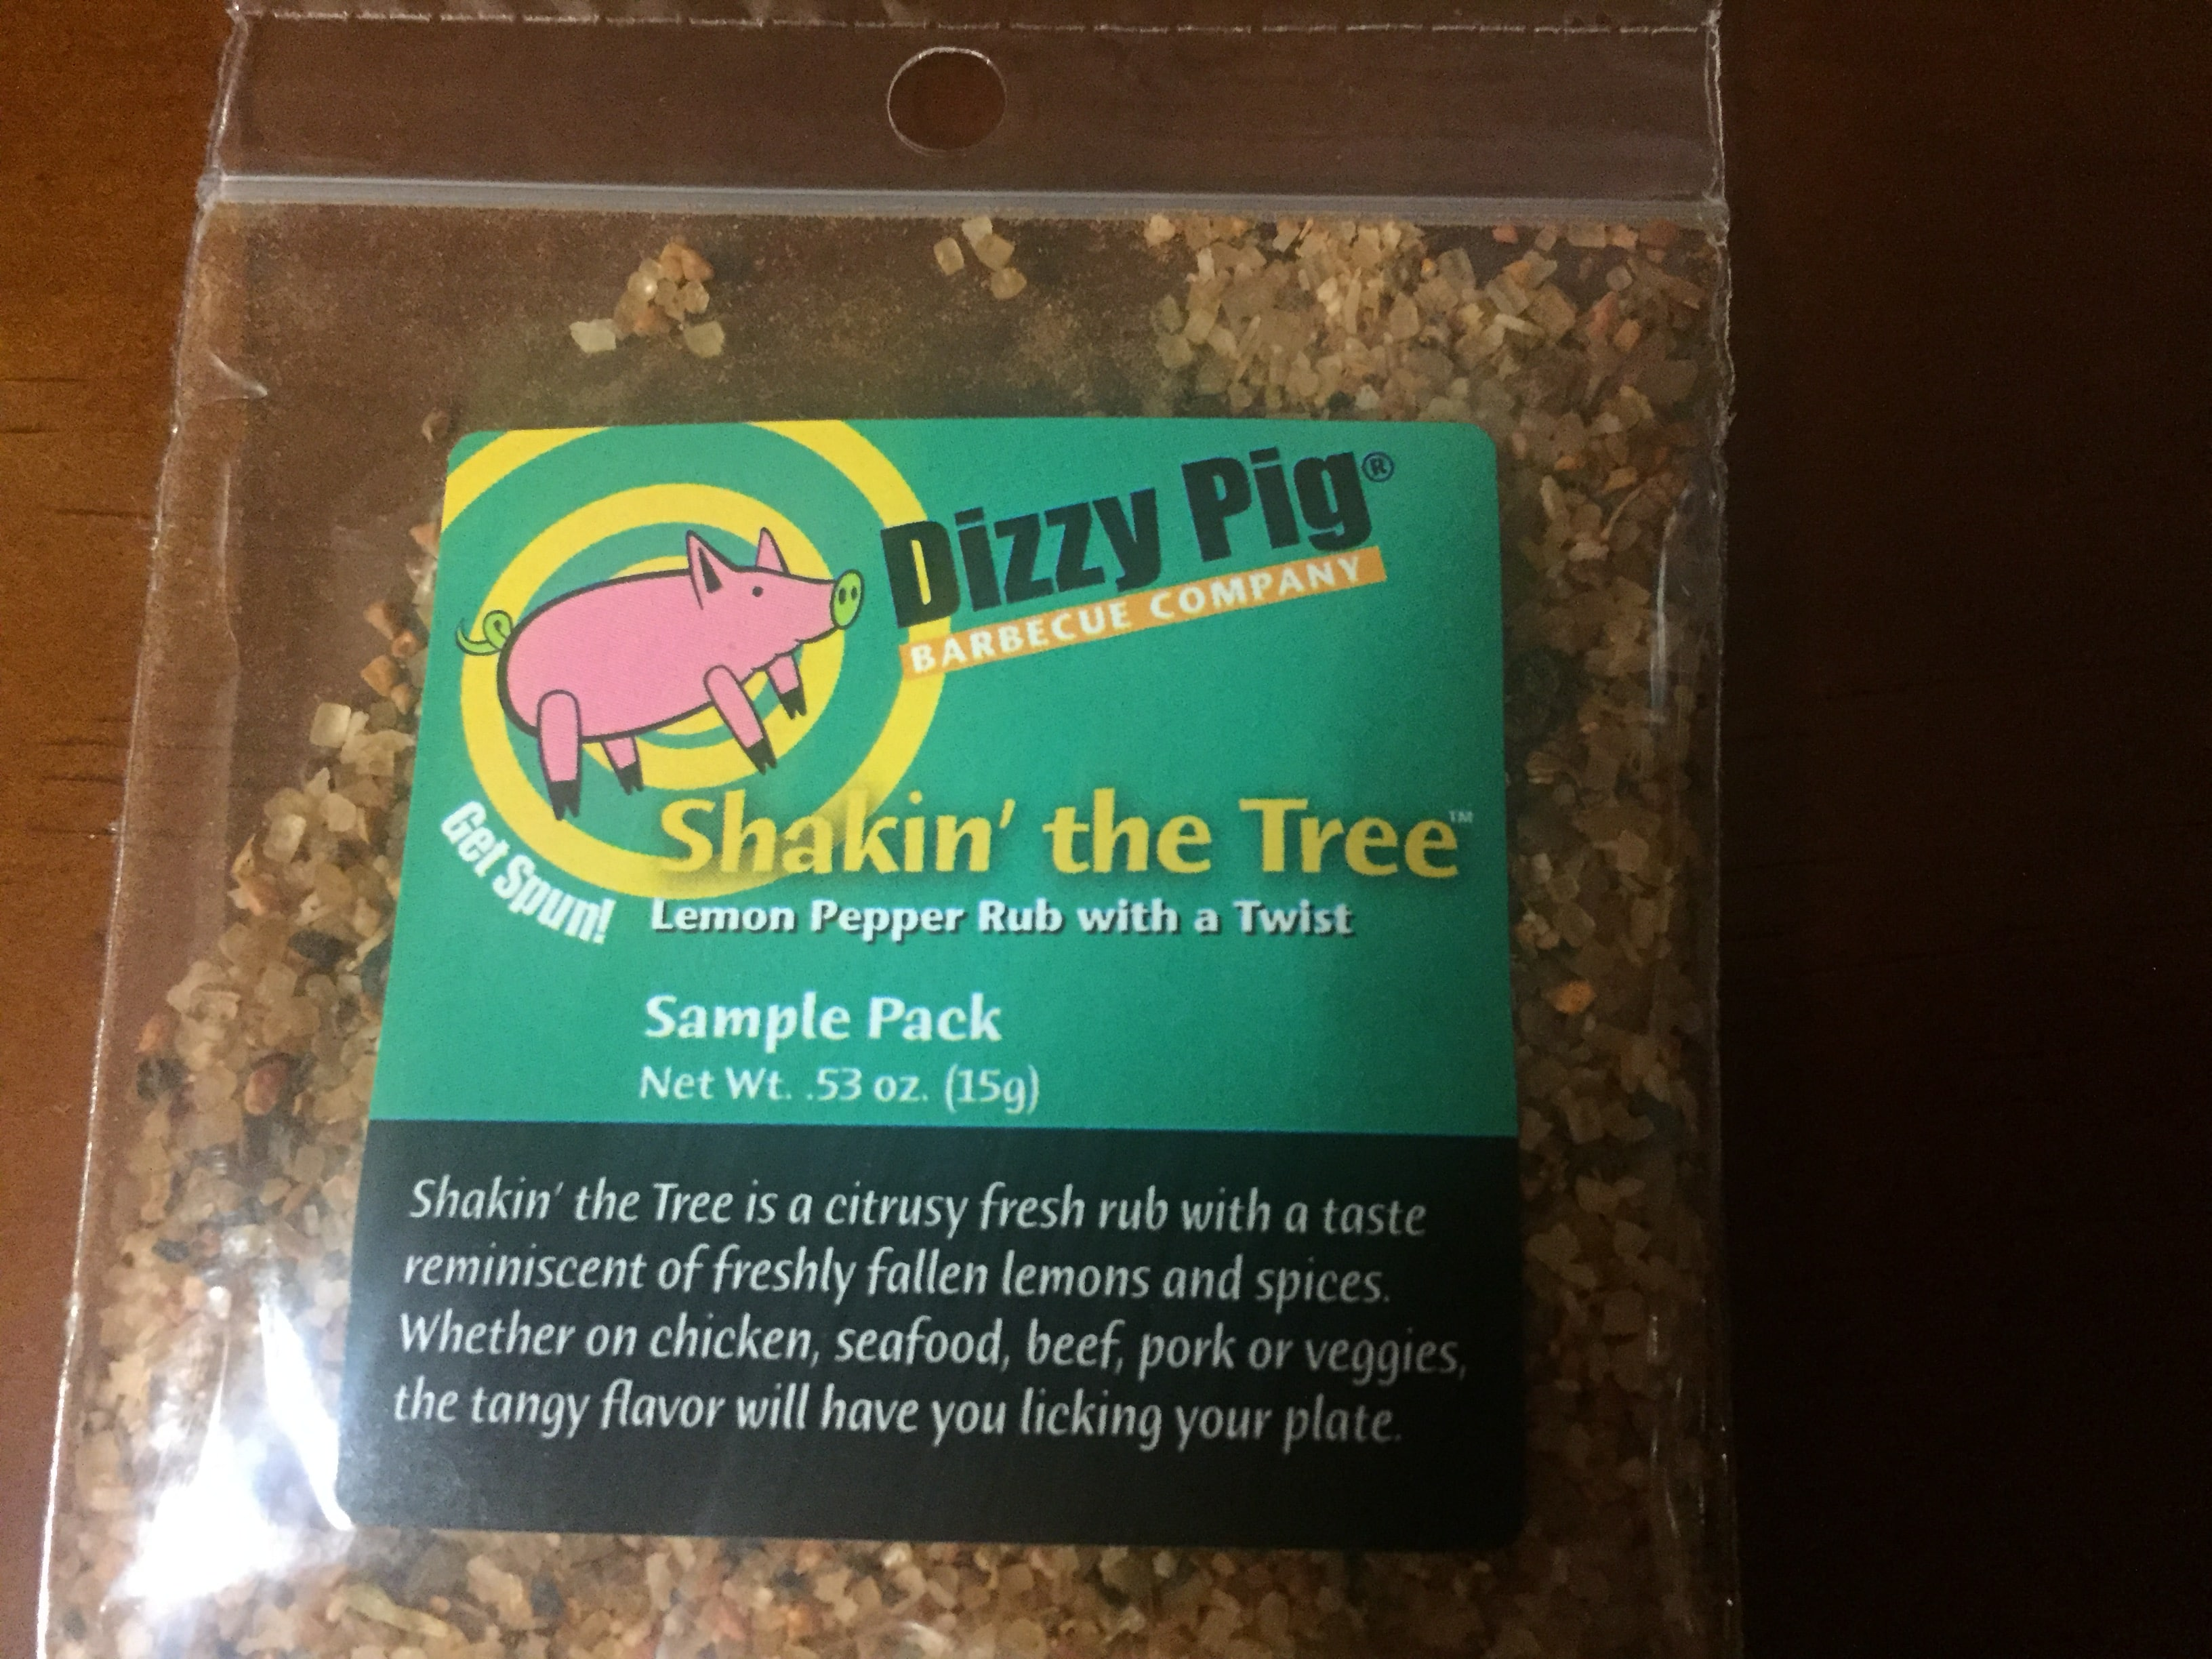 Dizzy Pig Seasoning, Shakin' the Tree – Lemon Pepper Rub with a Twist